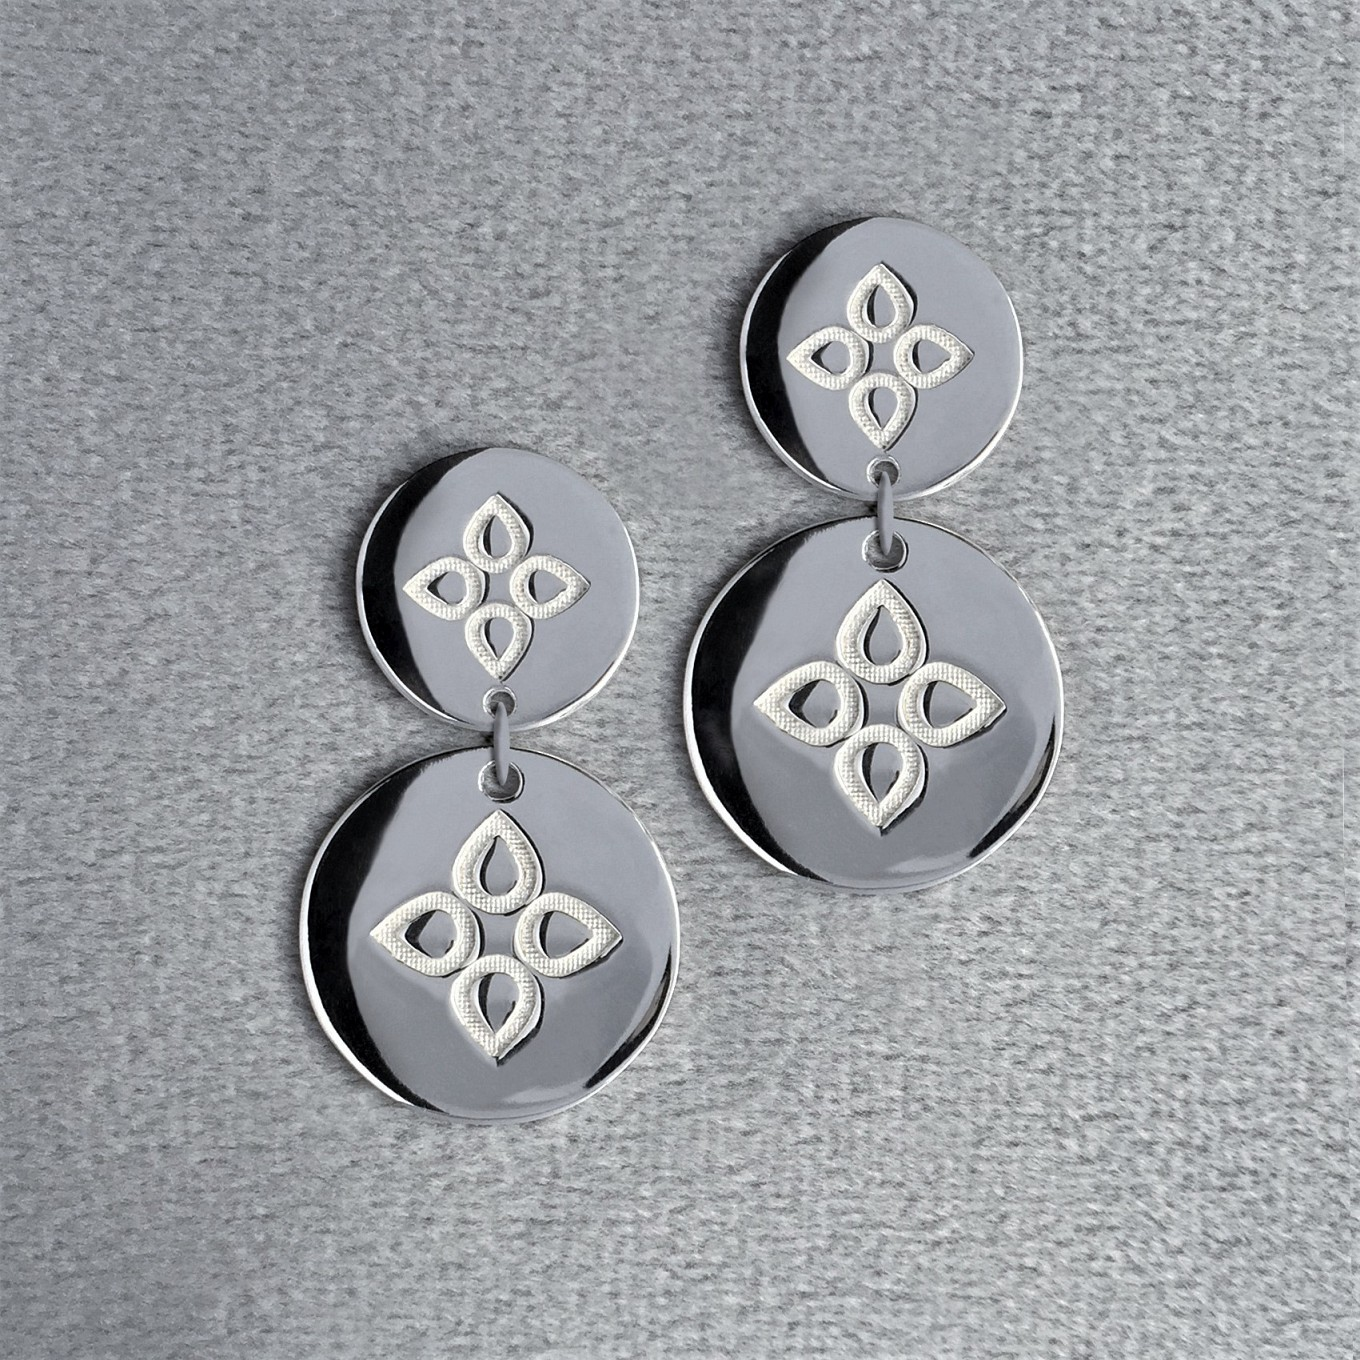 Double disc sevilla motif earrings in sterling silver